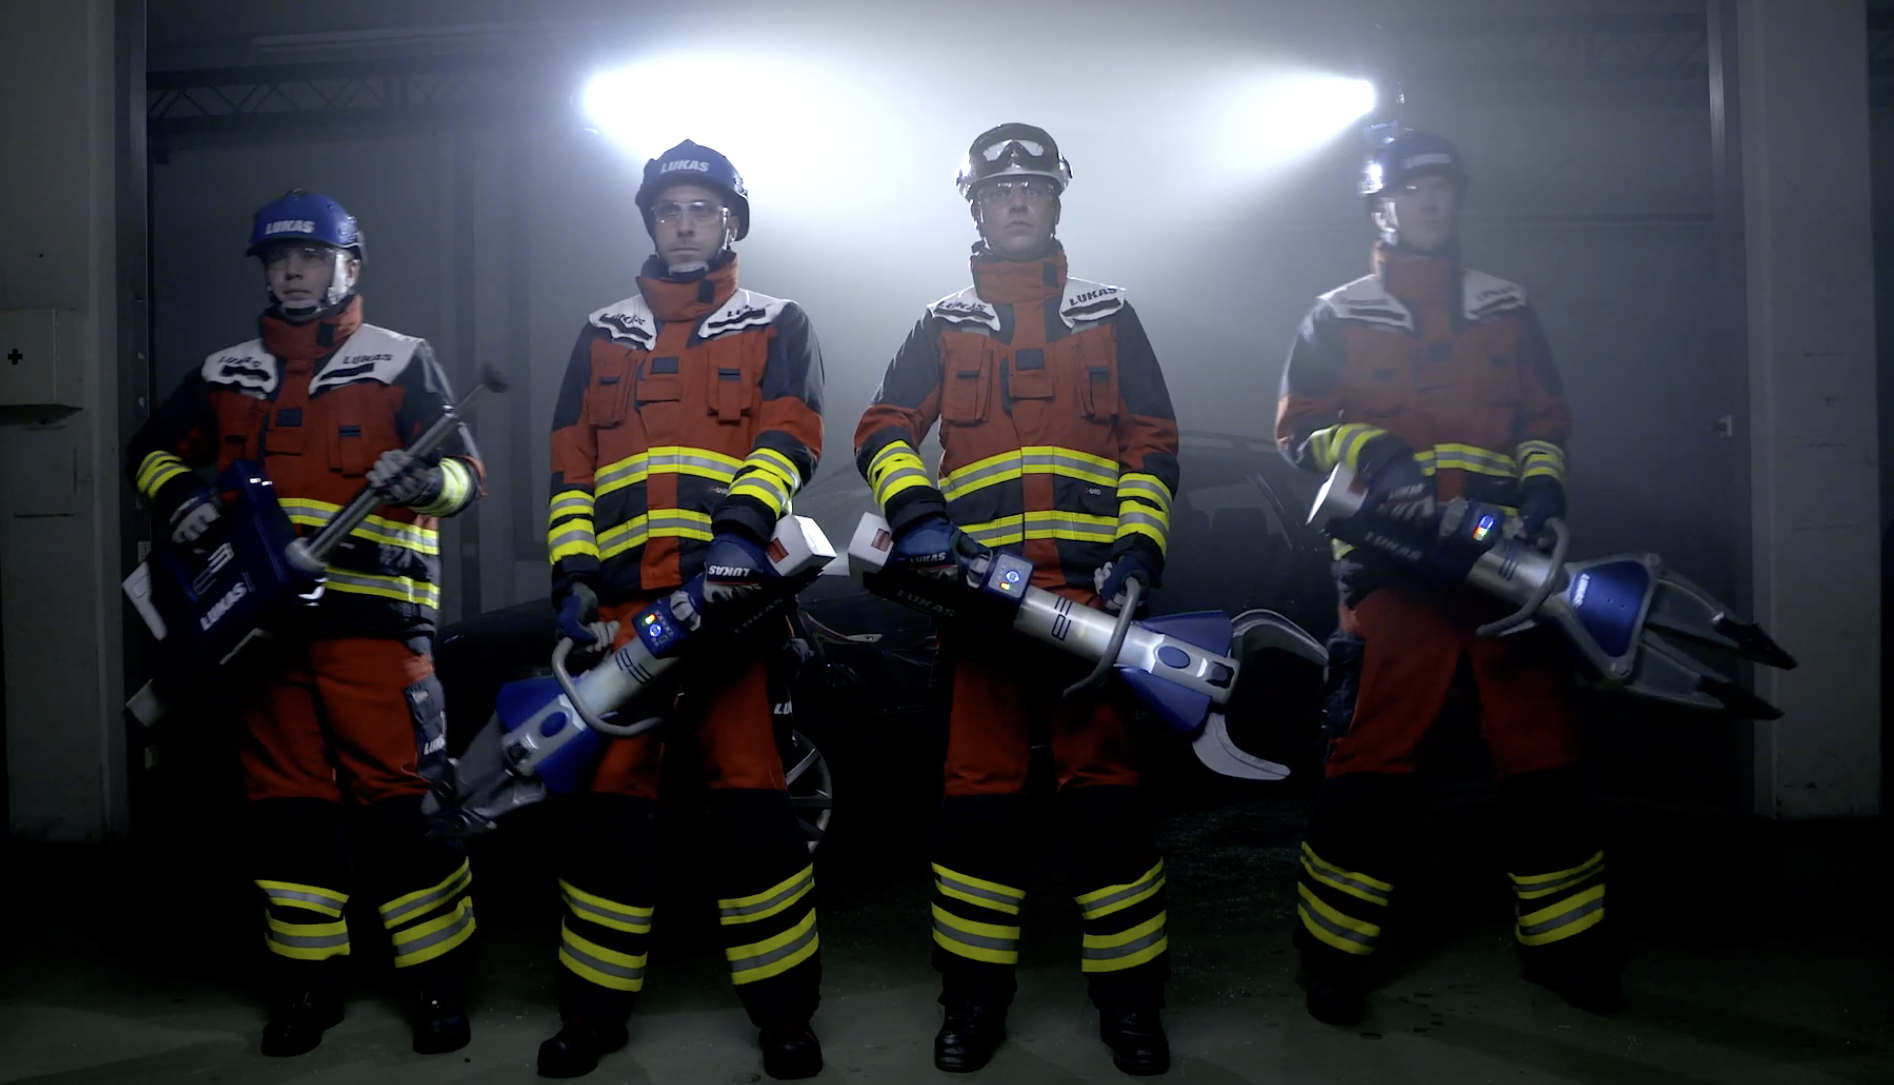 ARE YOU READY FOR THE NEXT LEVEL OF RESCUE OPERATIONS?